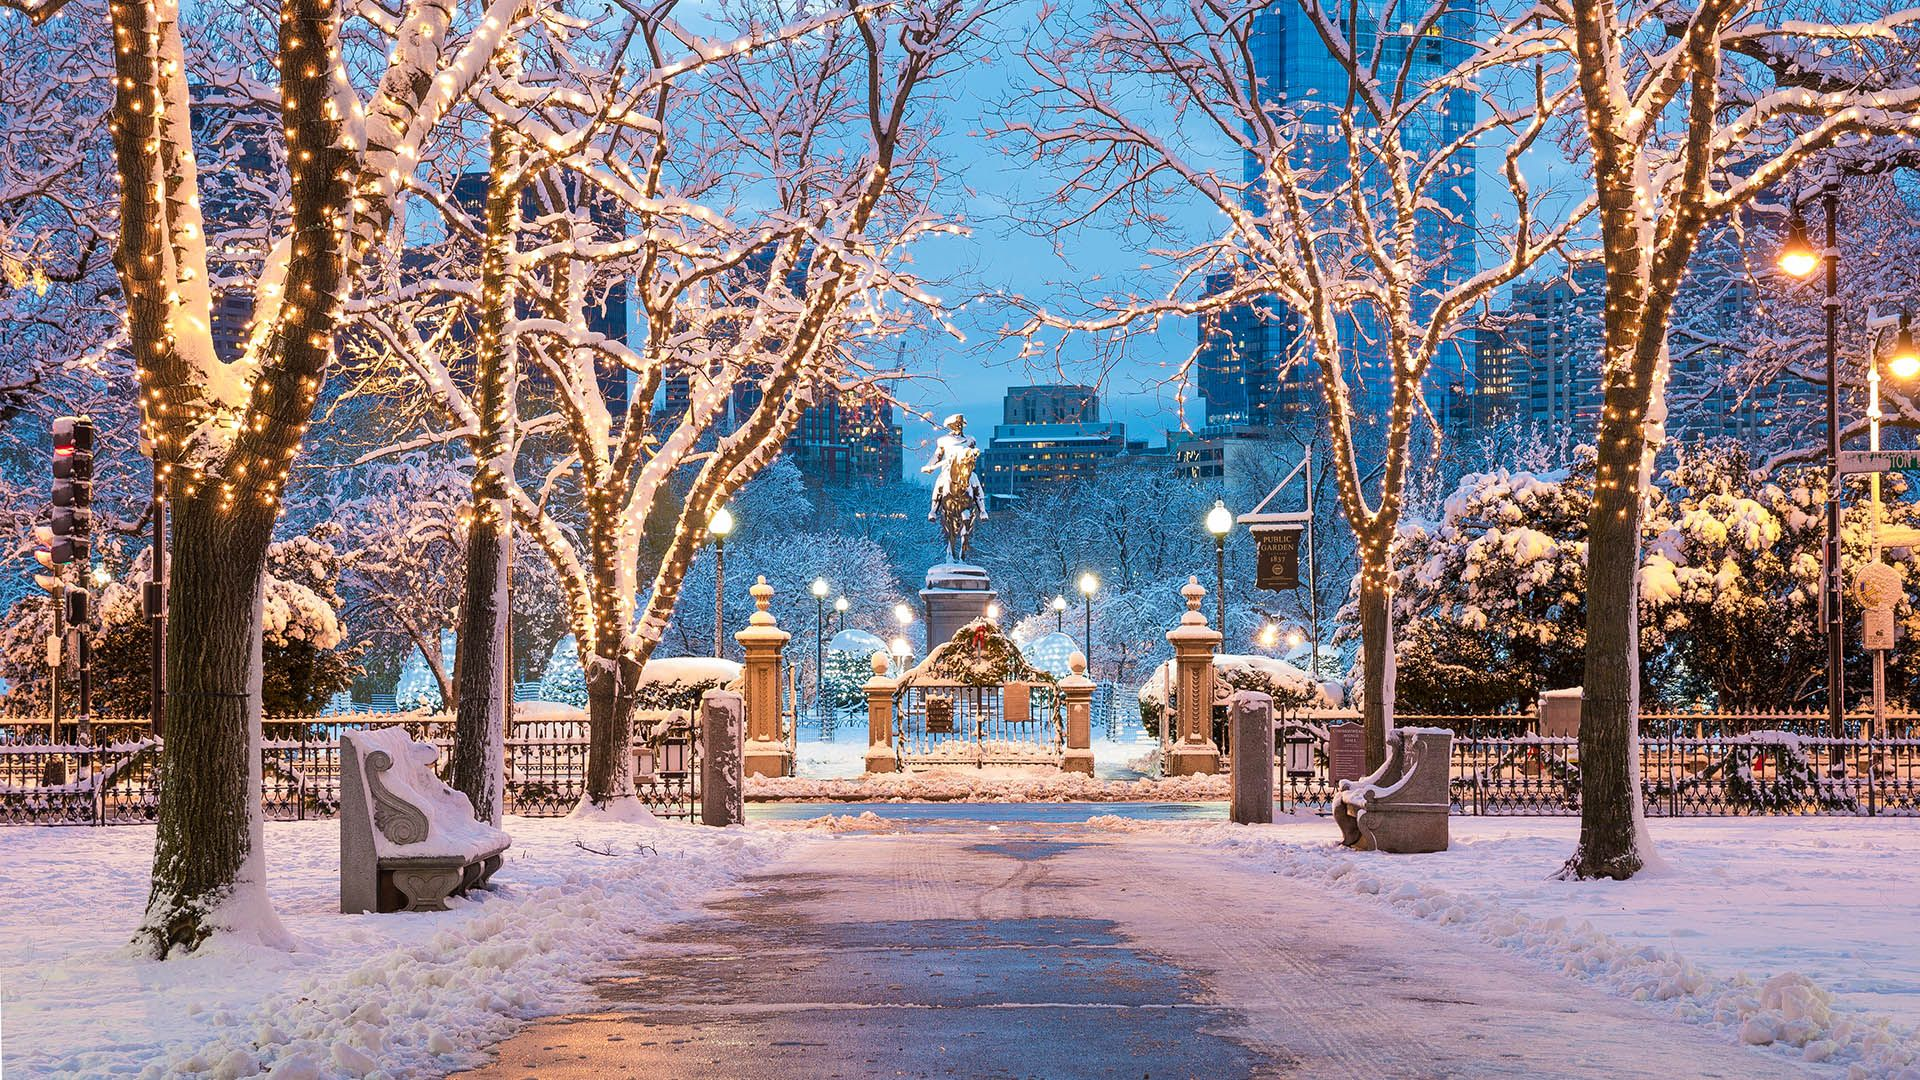 Snow Christmas Usa Chance 2021 20 Of The Most Picturesque Christmas Destinations Rough Guides